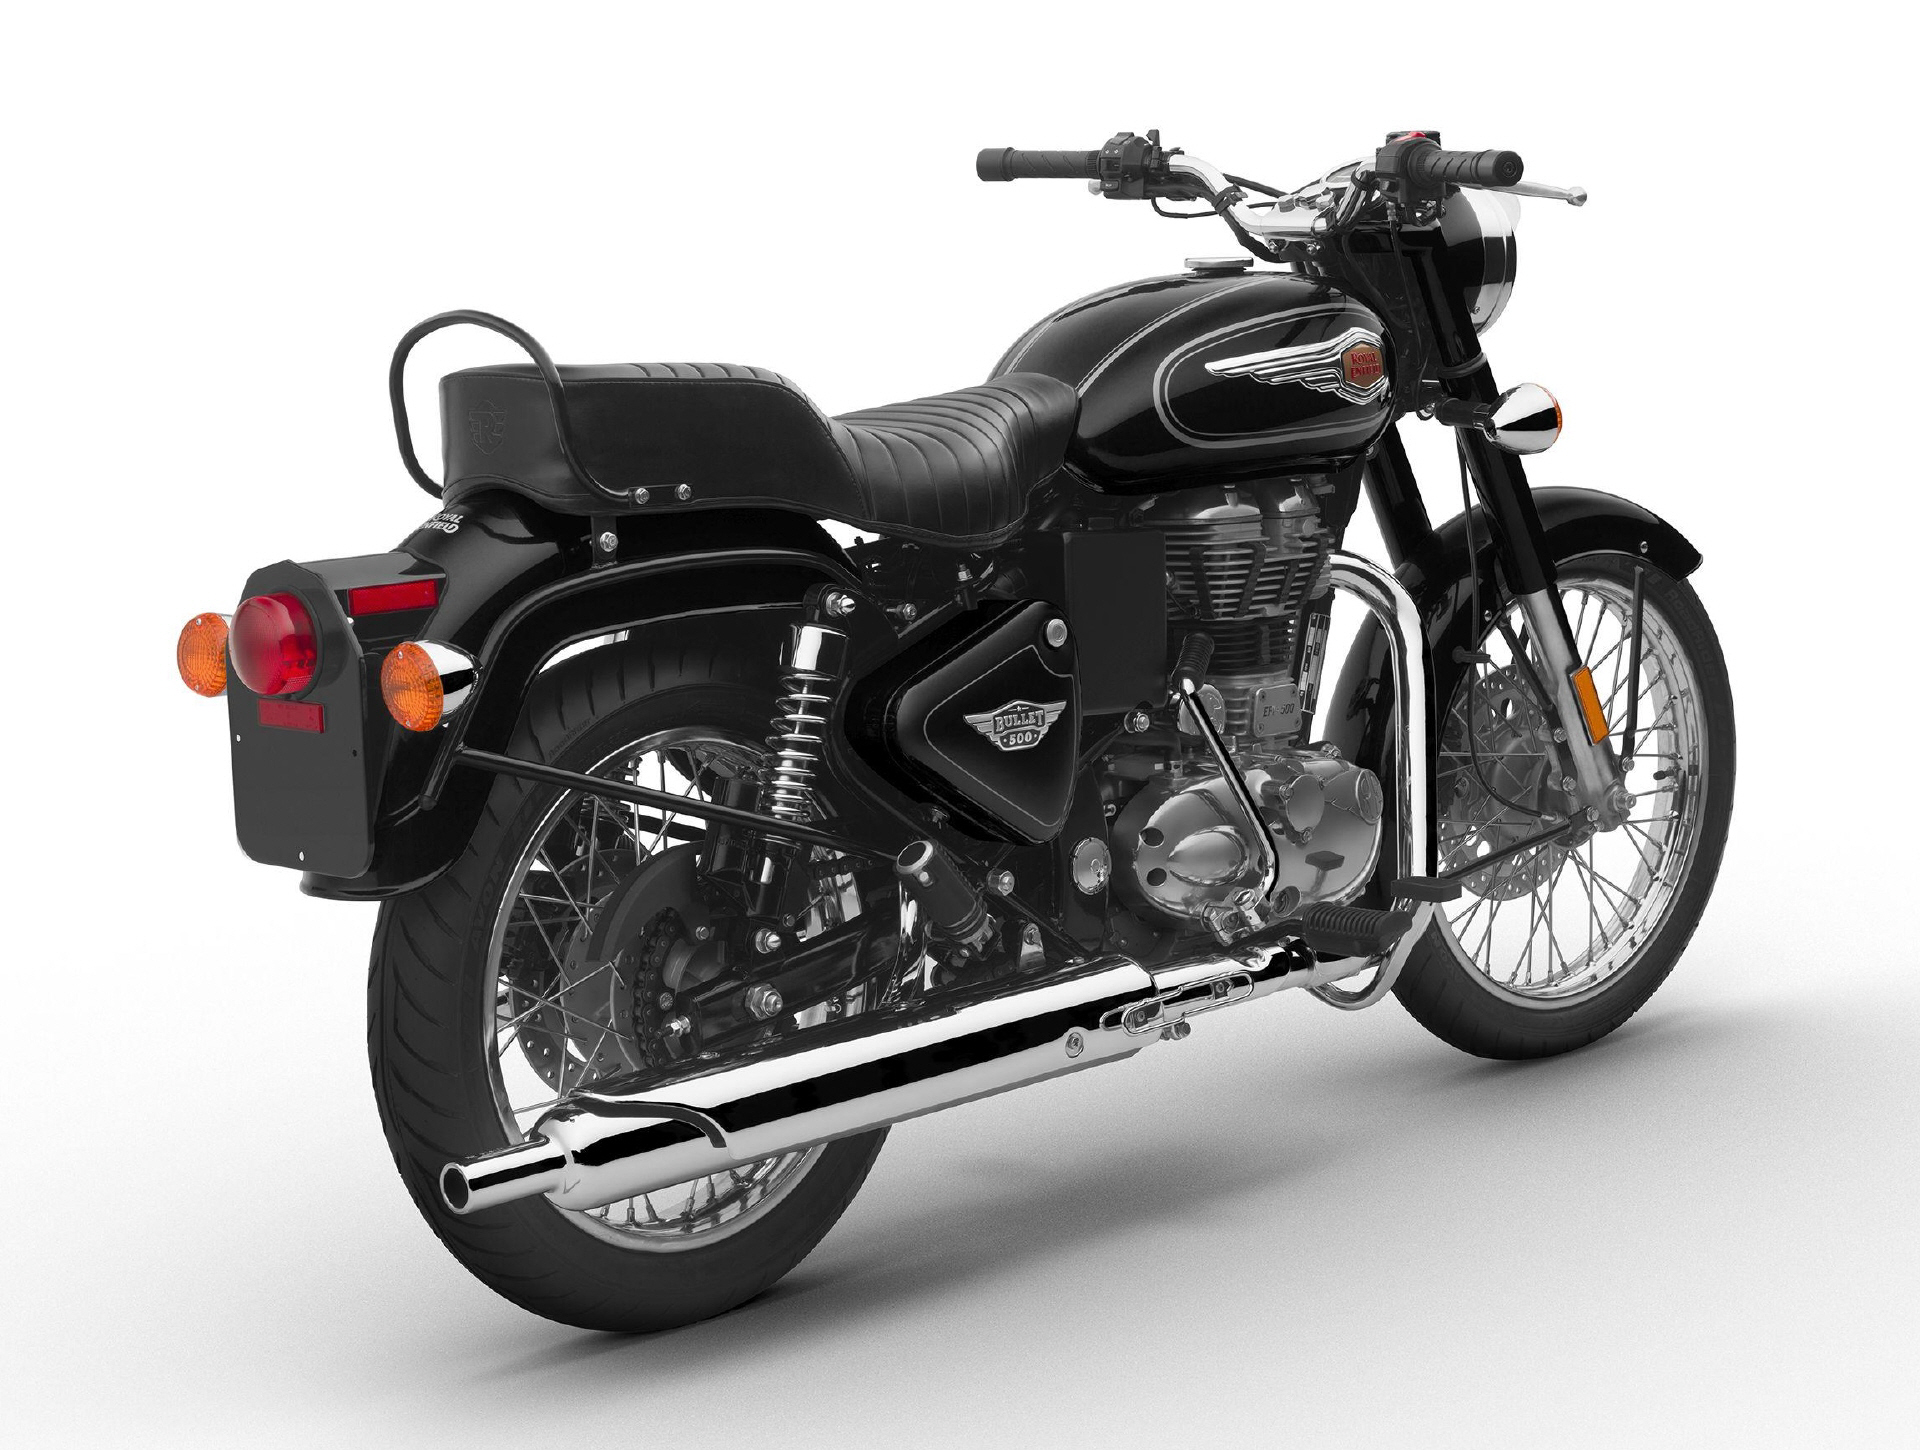 royalenfield_bullet_black_01jpg